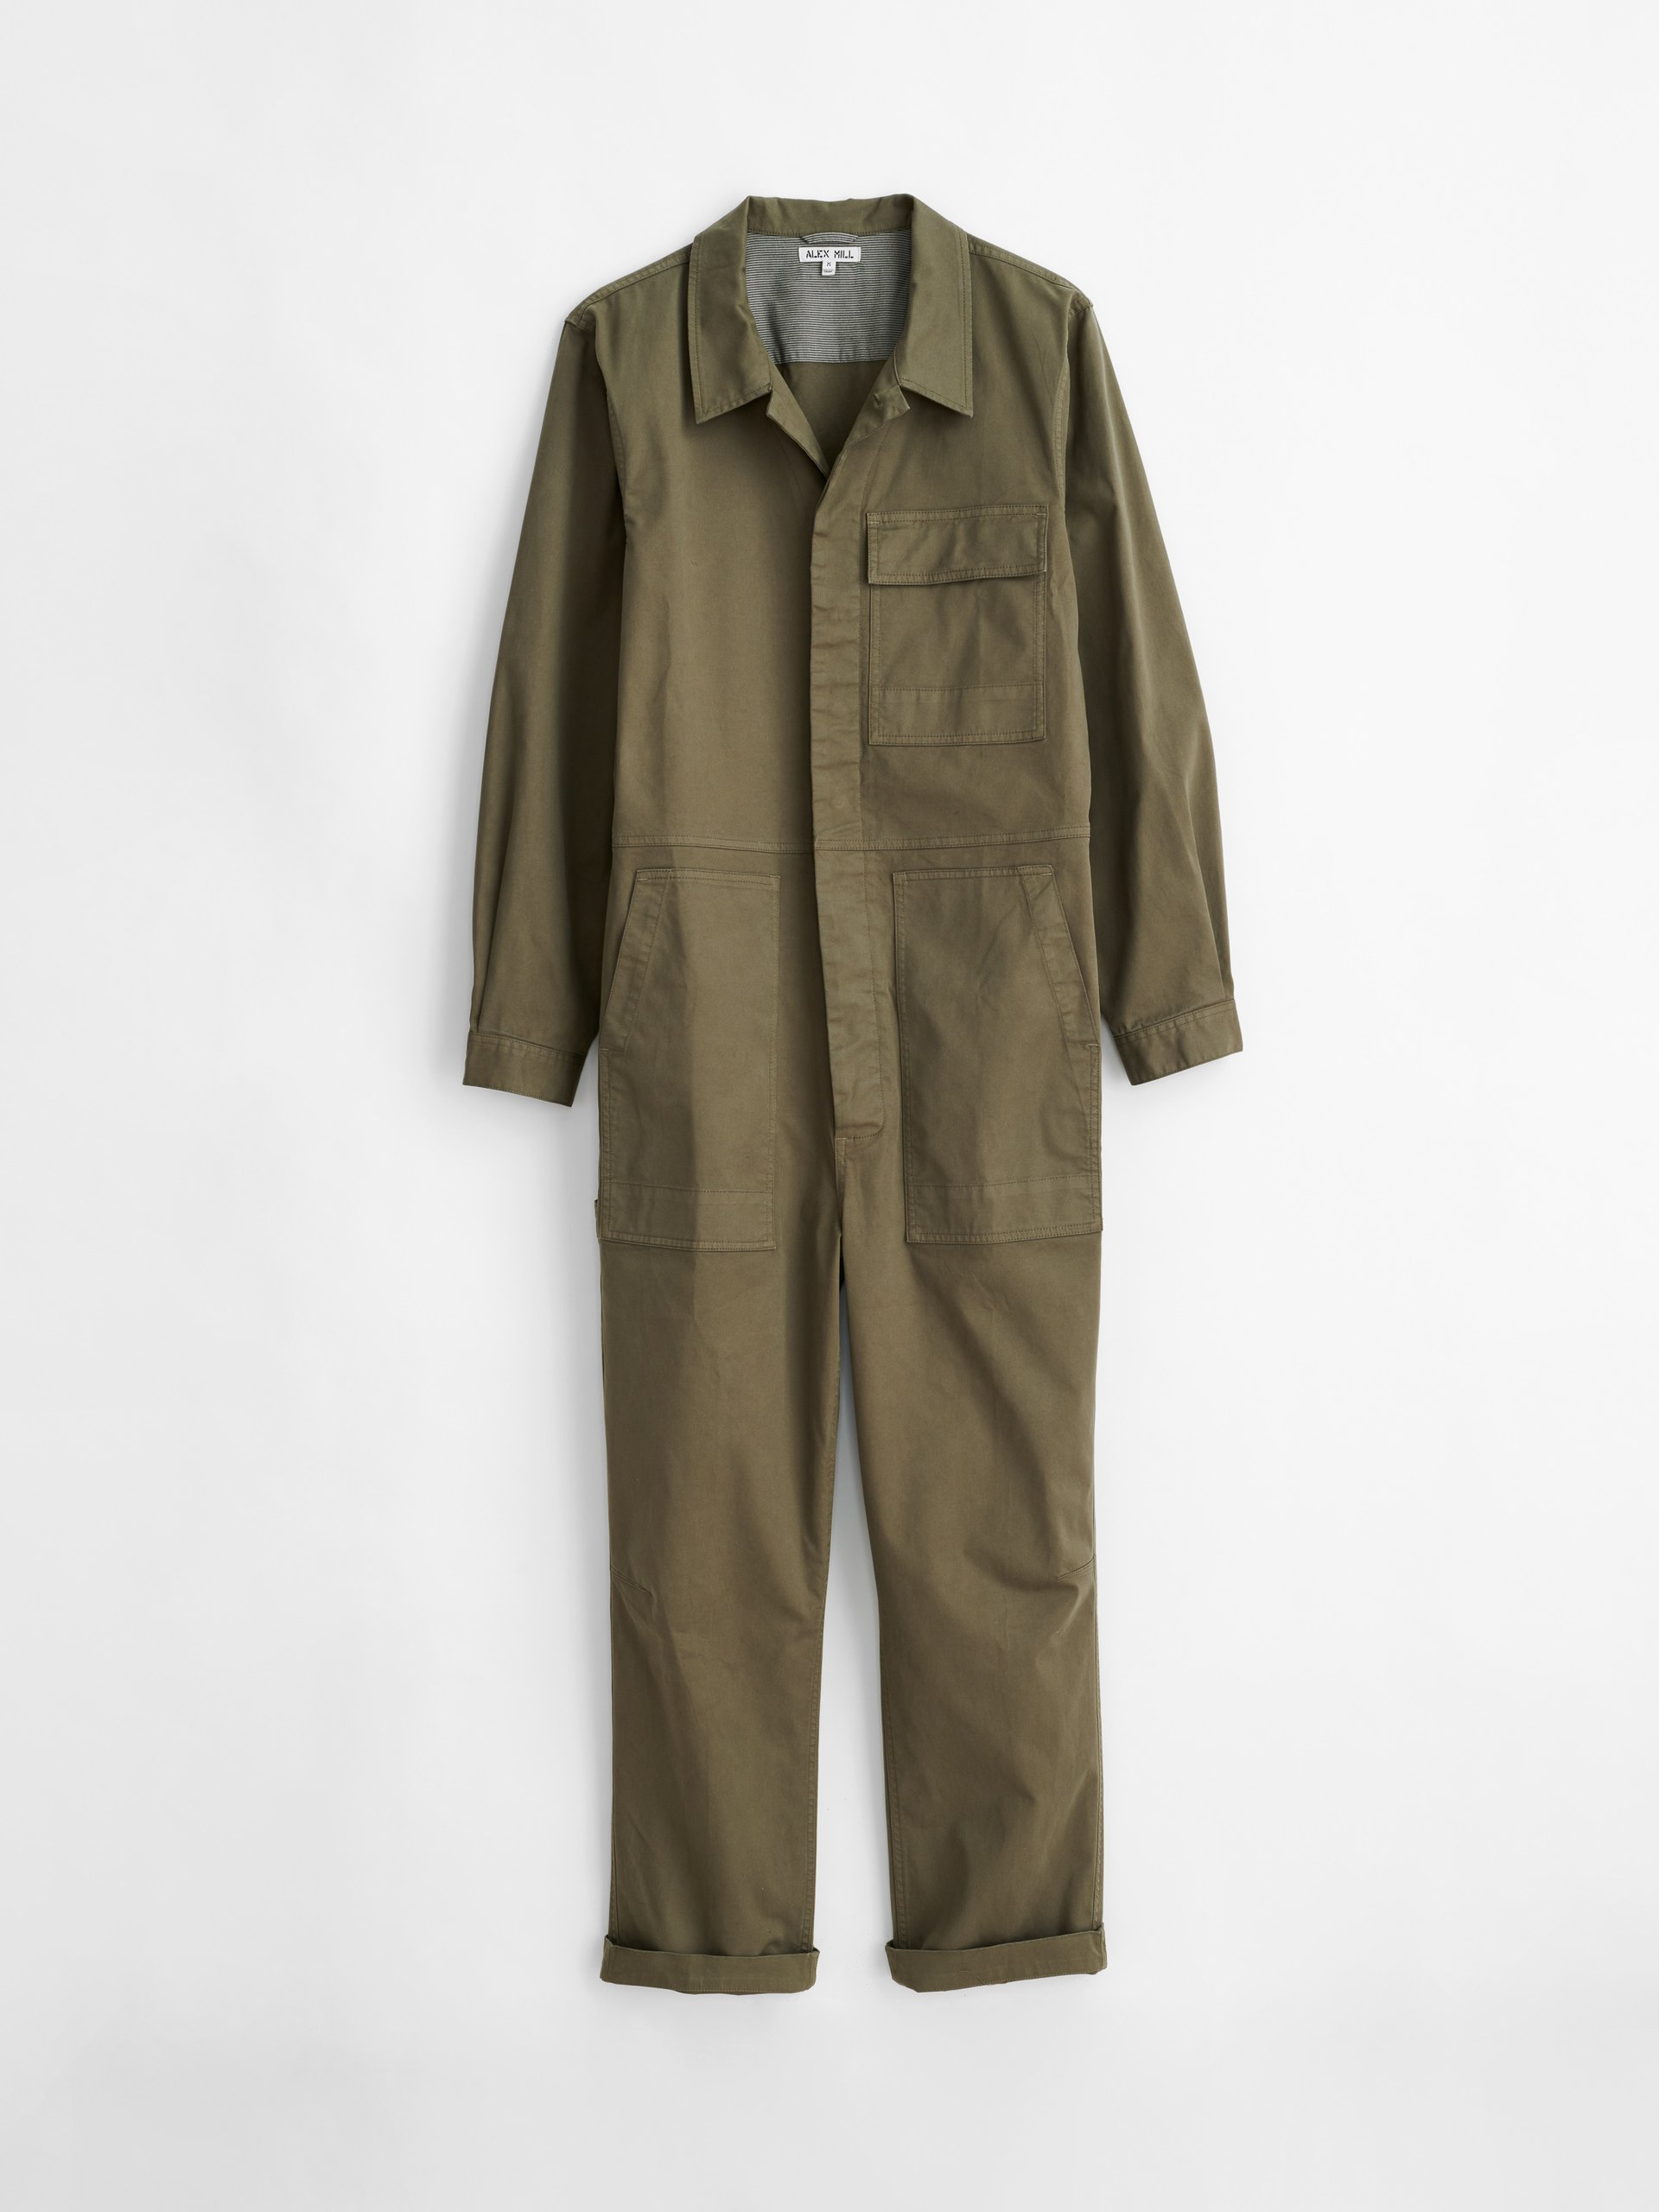 The stylish Alex Mill Field Jumpsuit is expected to be a hit among men for the spring of 2021.